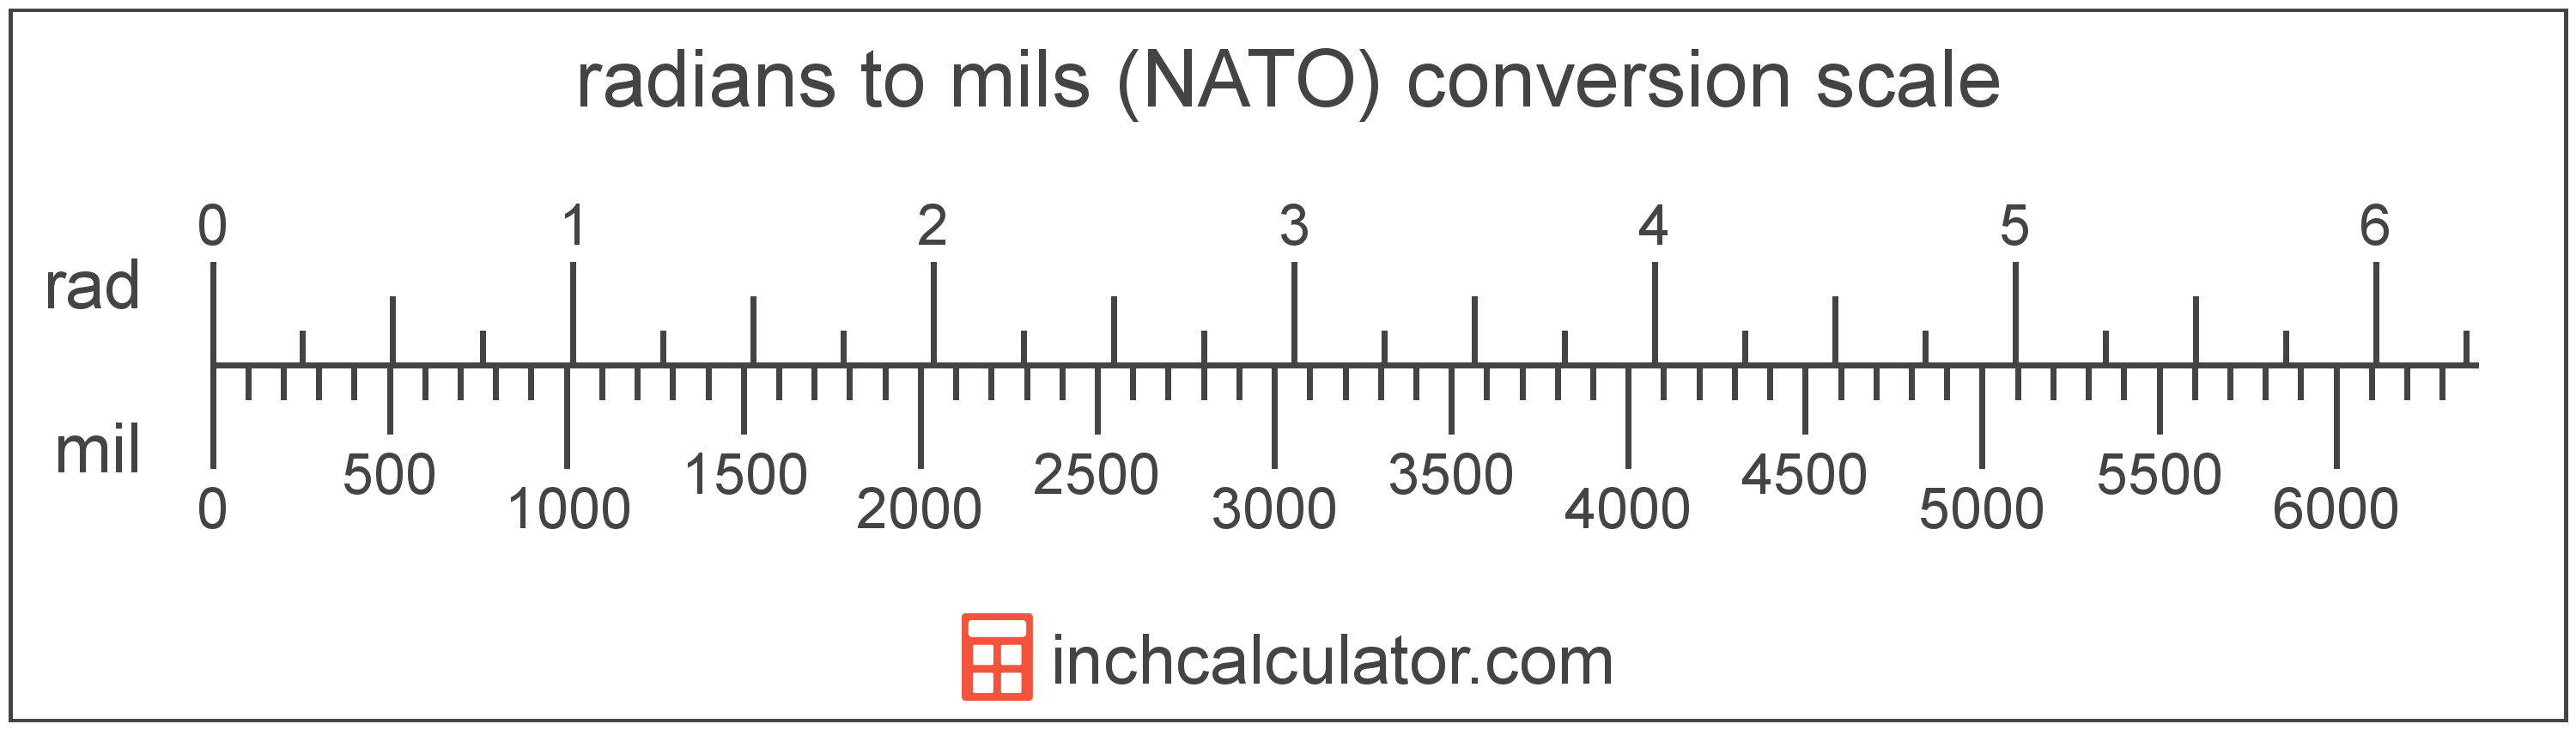 conversion scale showing mils (NATO) and equivalent radians angle values